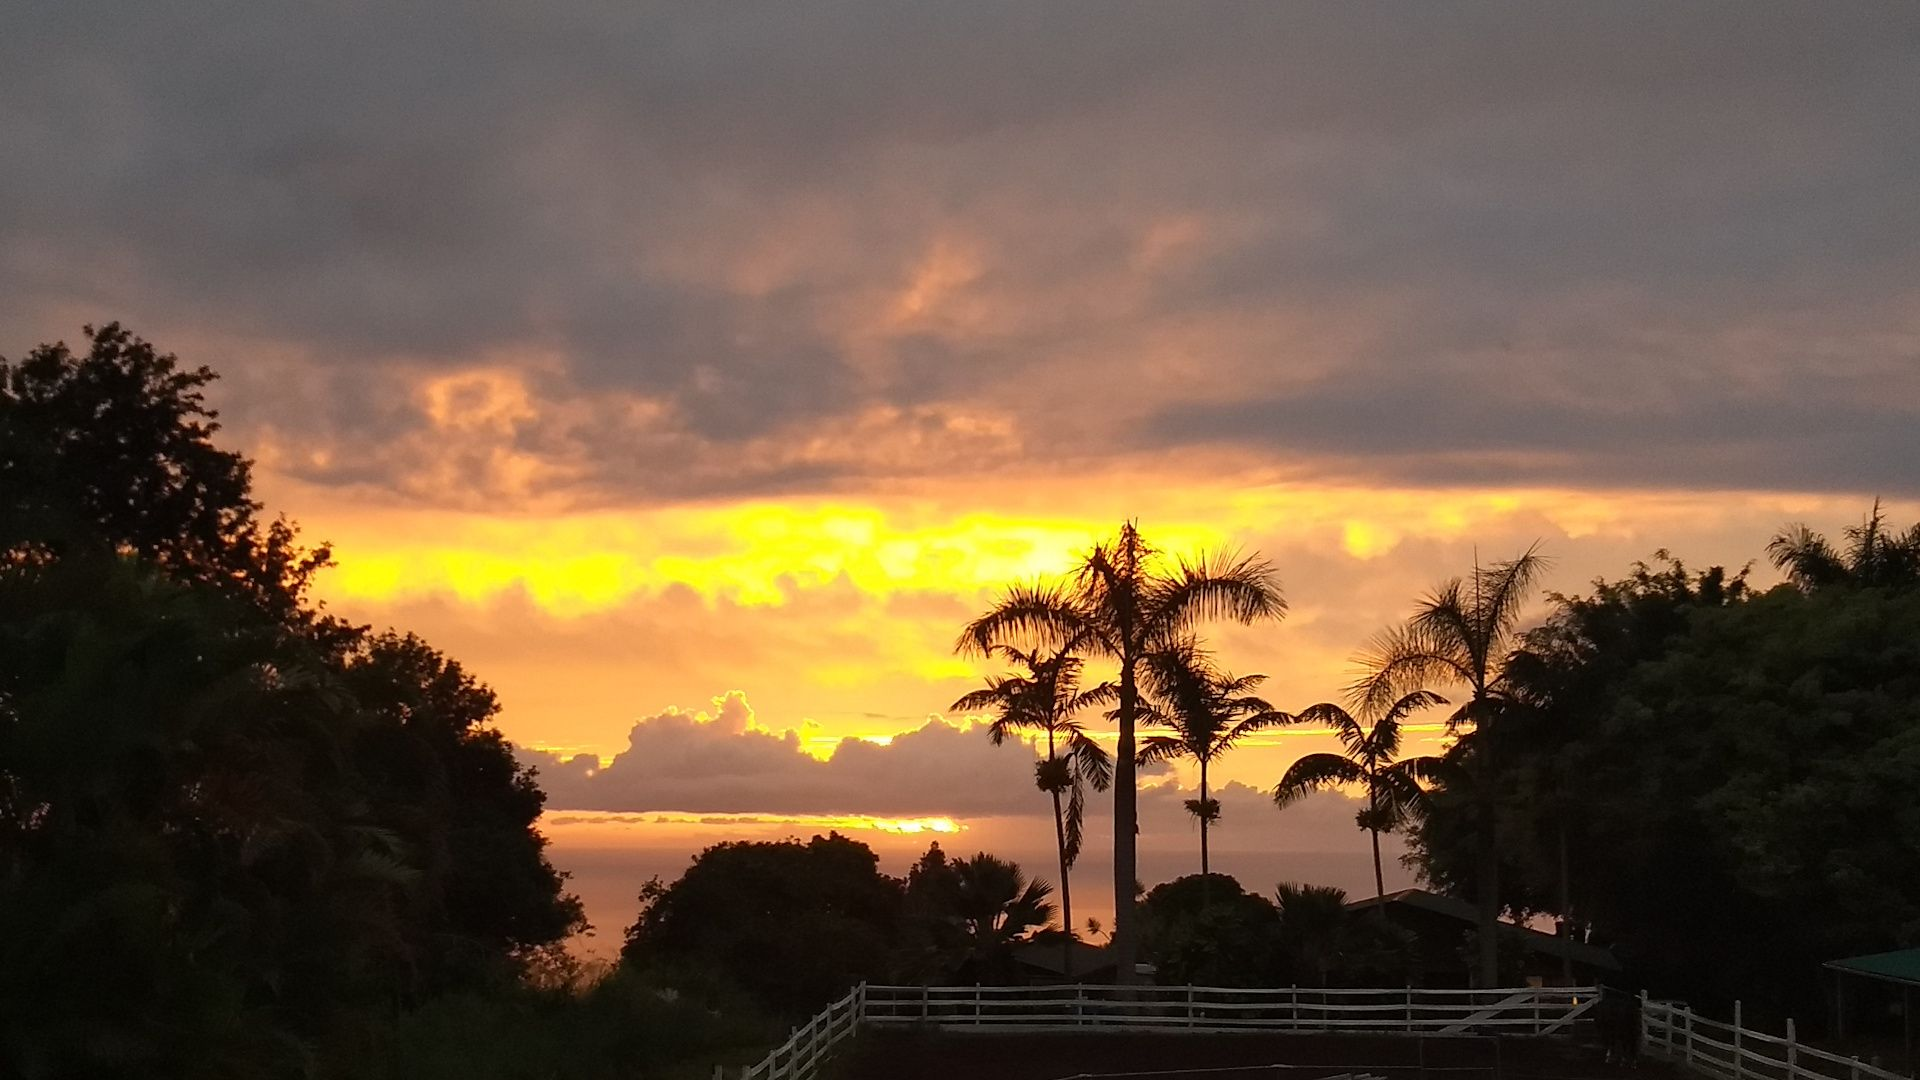 A brilliant sunset with many layers of clouds. Palms and deciduous trees are silhouetted in the midground.